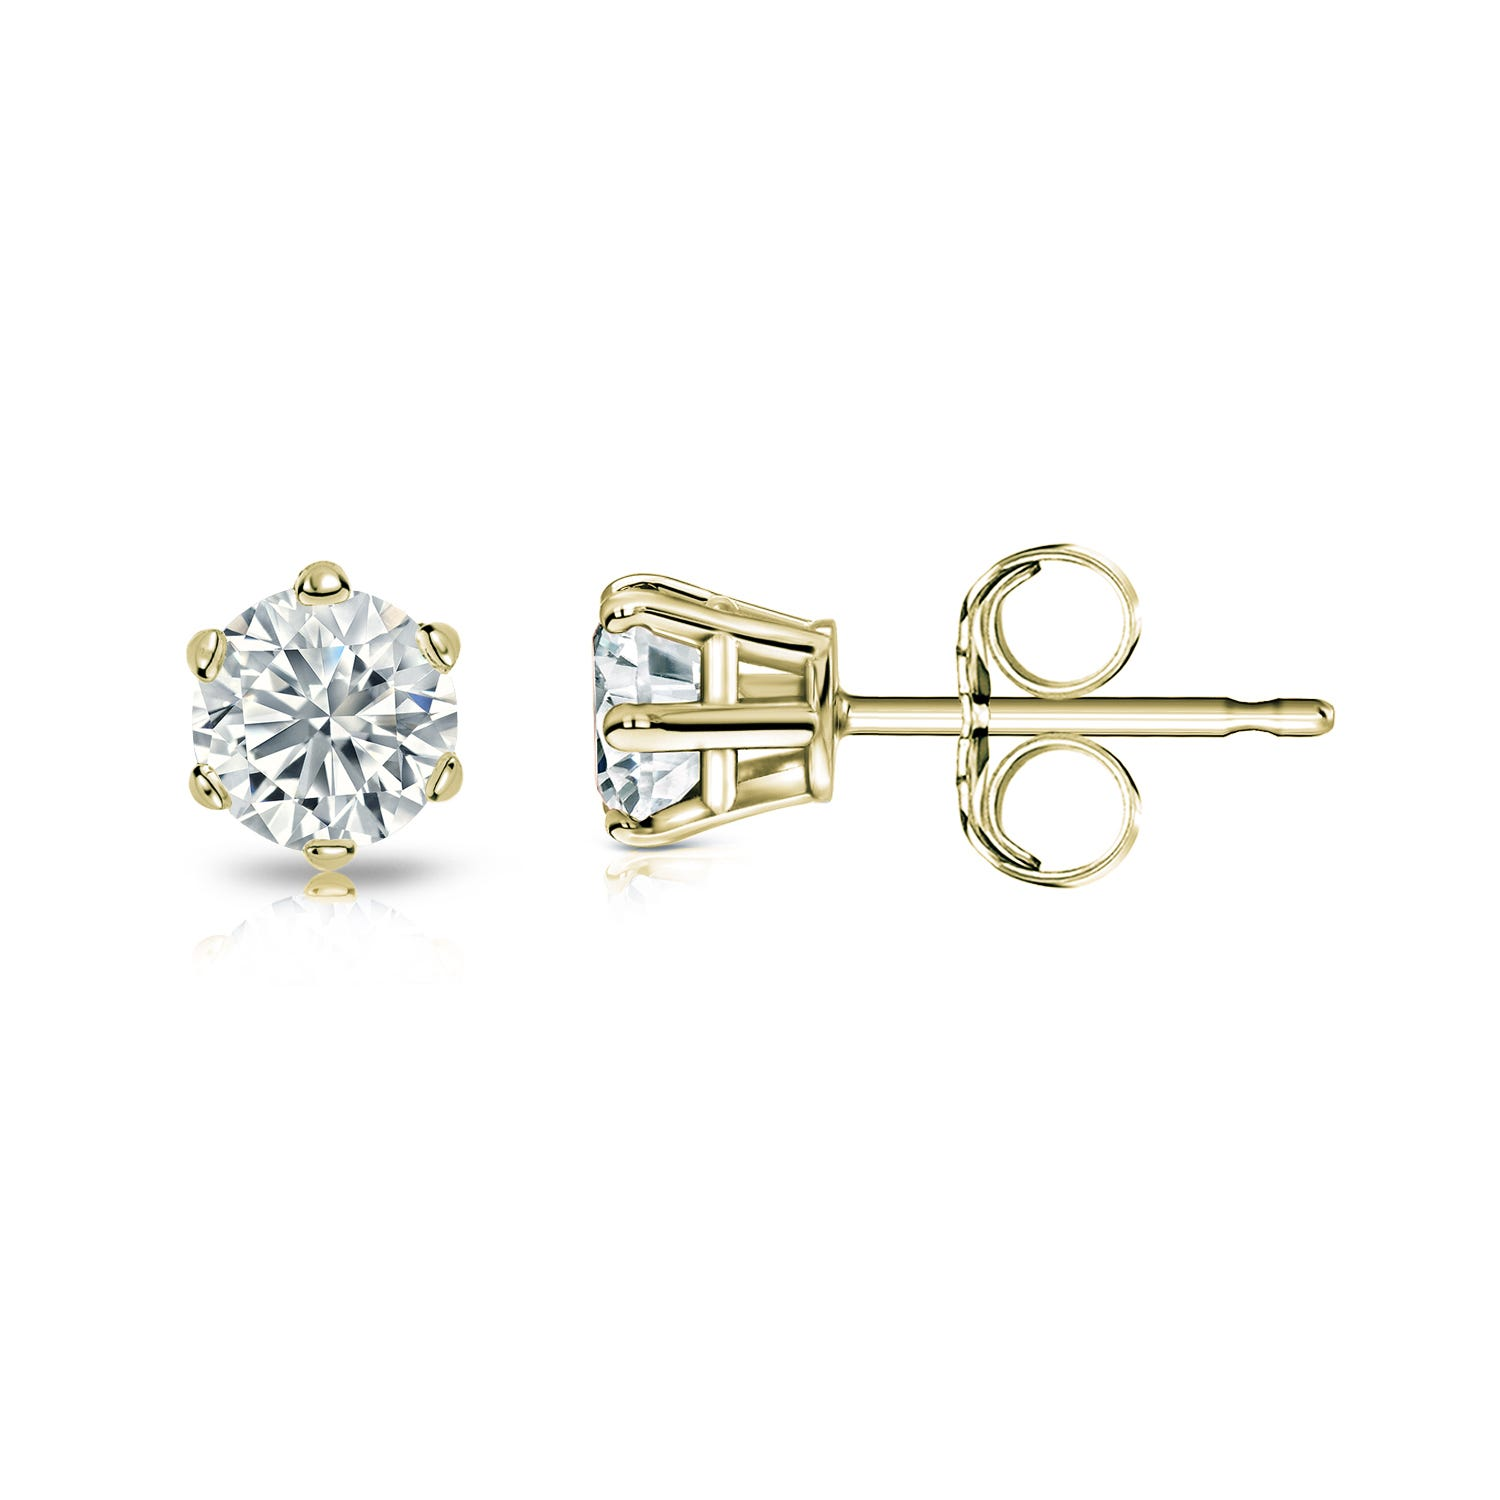 Round Diamond 1/5ctw. (IJ-SI2) Solitaire Stud 6-Prong Earrings in 14K Yellow Gold